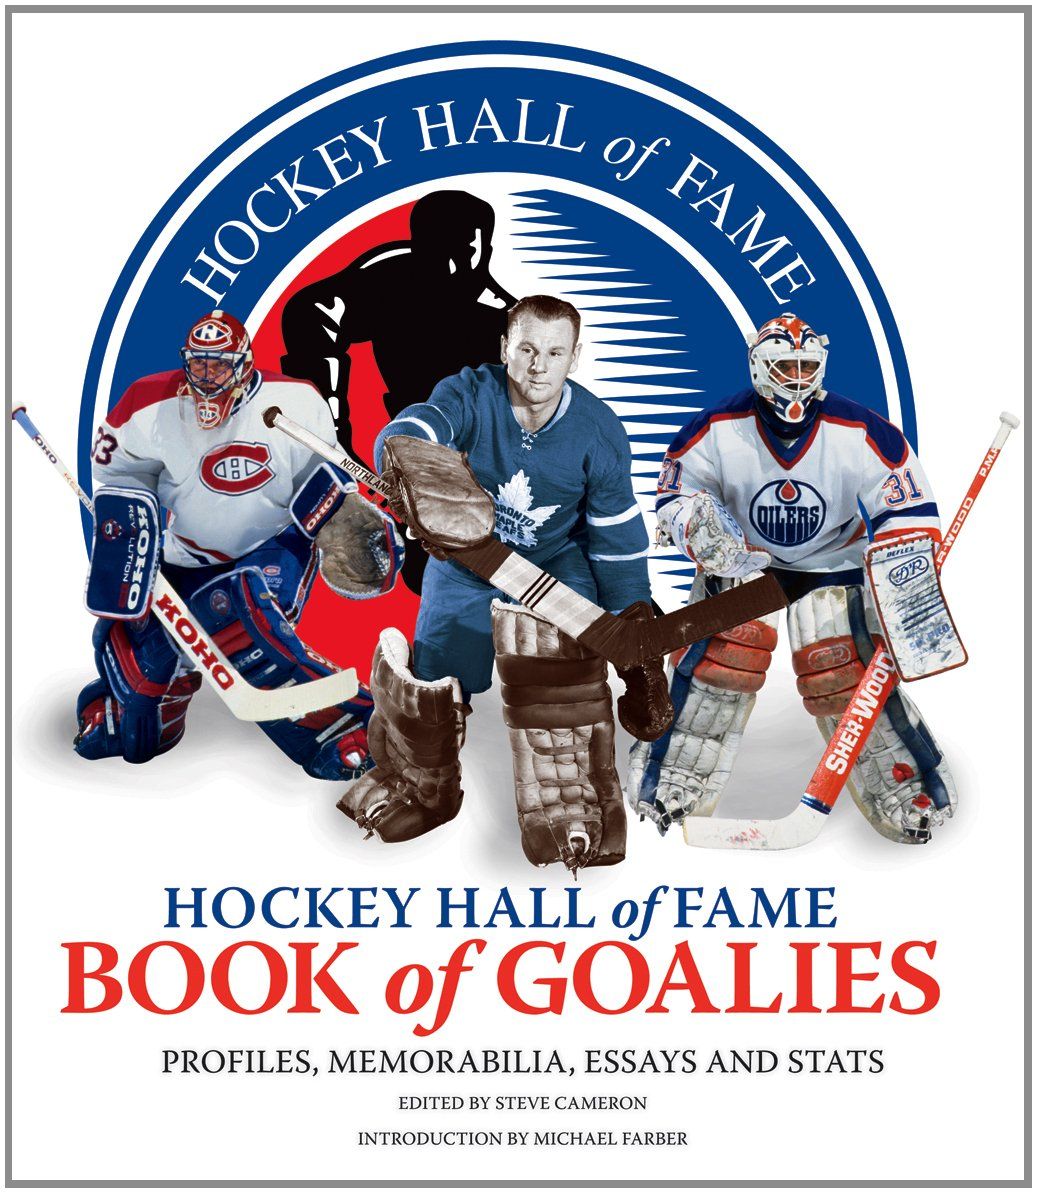 com hockey hall of fame book of goalies profiles com hockey hall of fame book of goalies profiles memorabilia essays and stats 9781770851344 steve cameron michael farber books